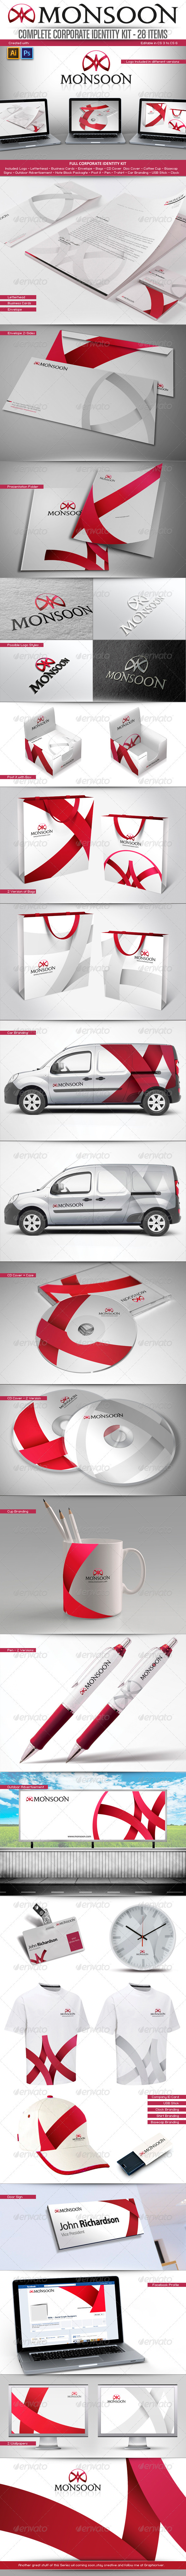 Red Modern Full Corporate Identity Template Package Kit